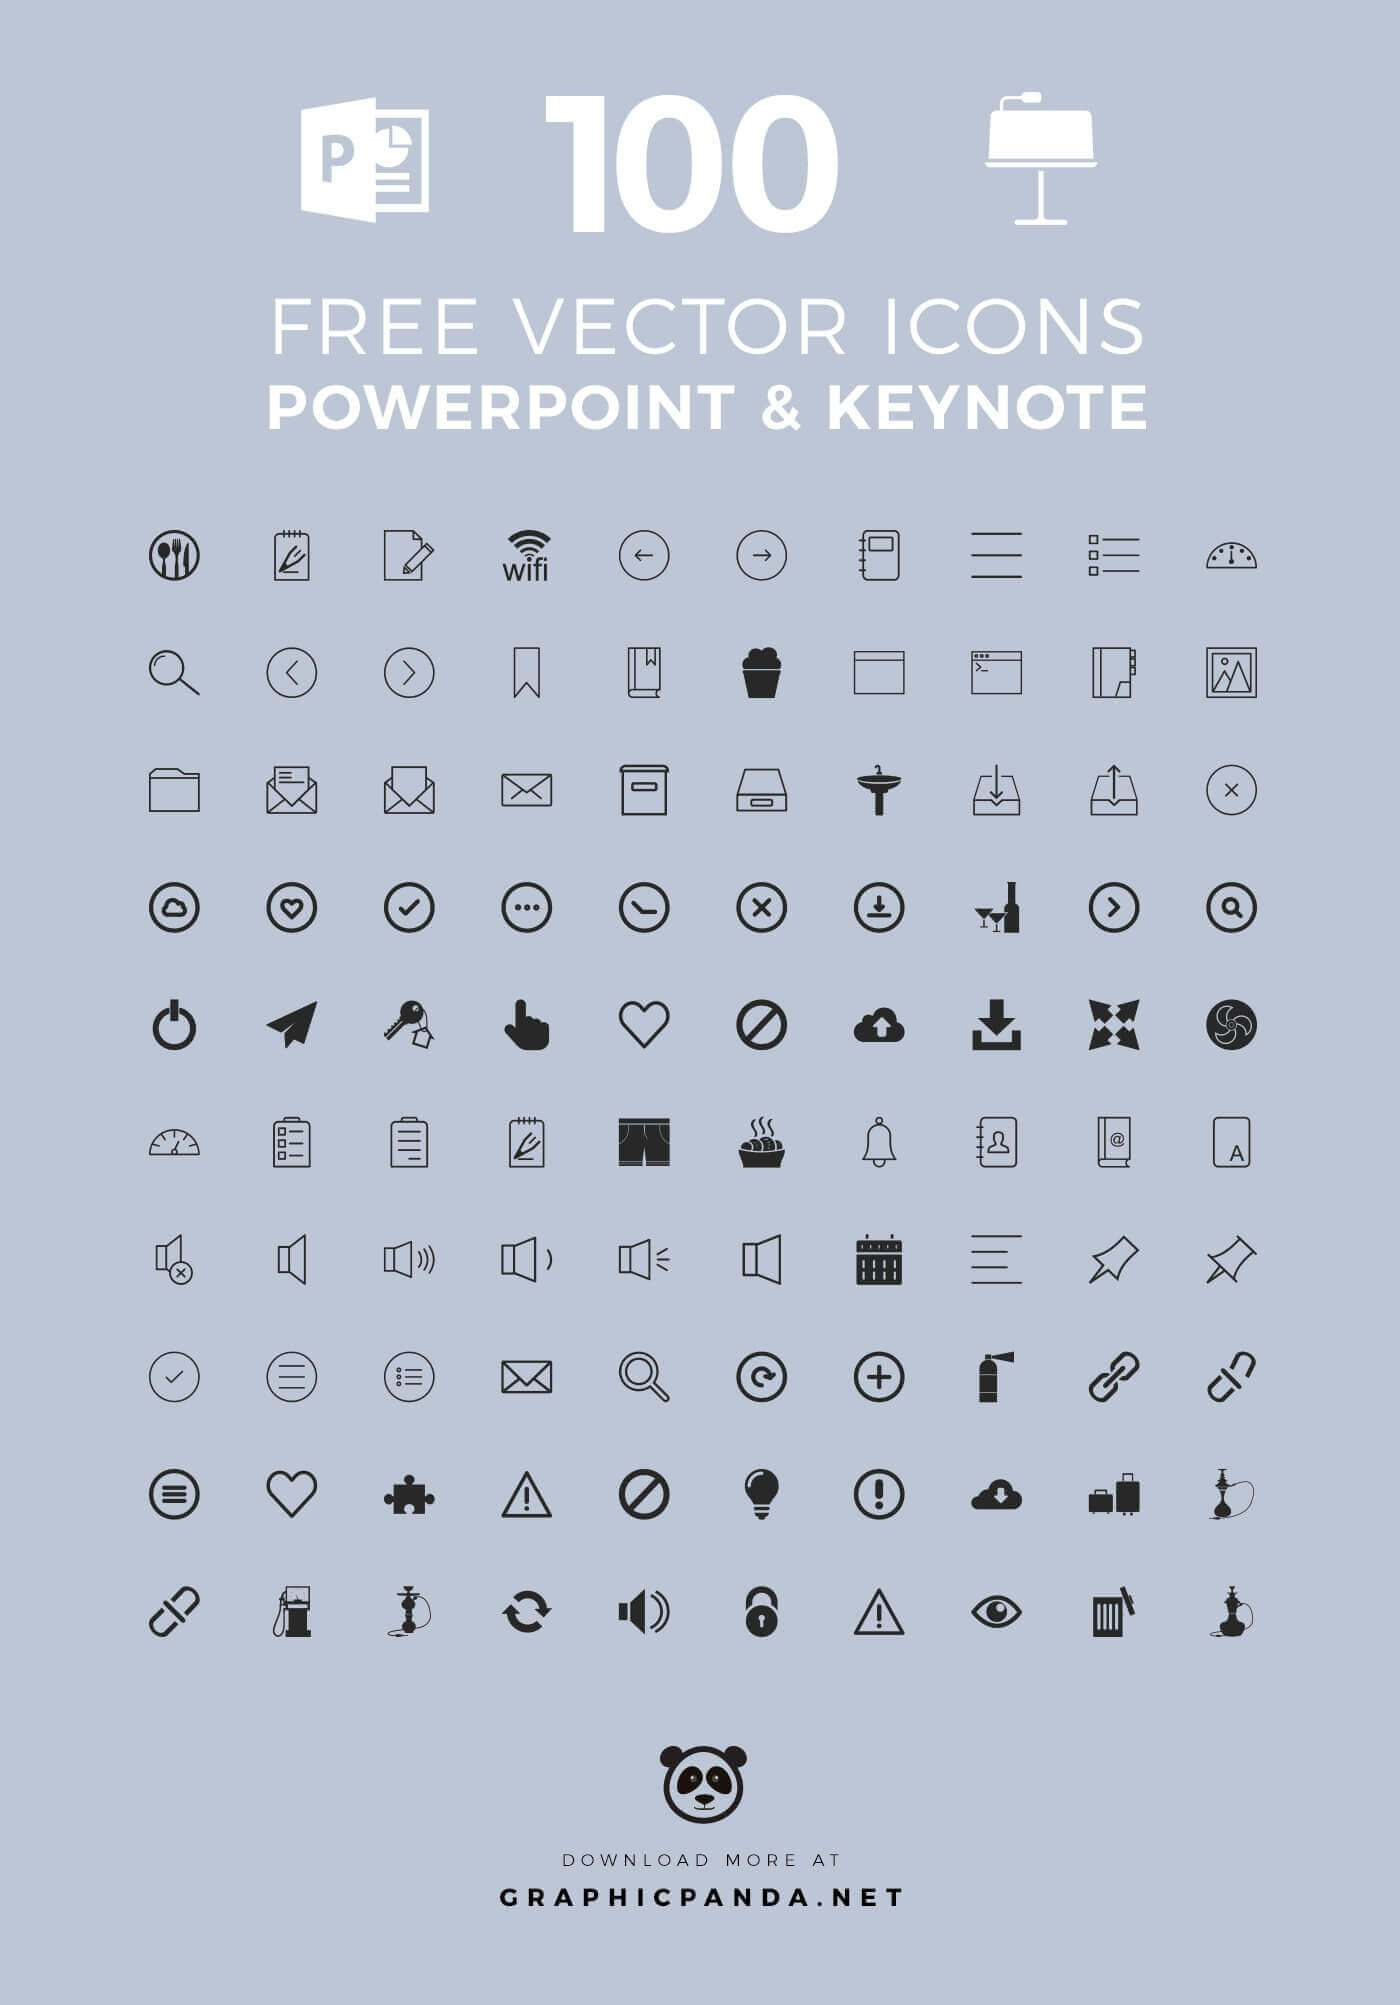 Powerpoint Vector Icons